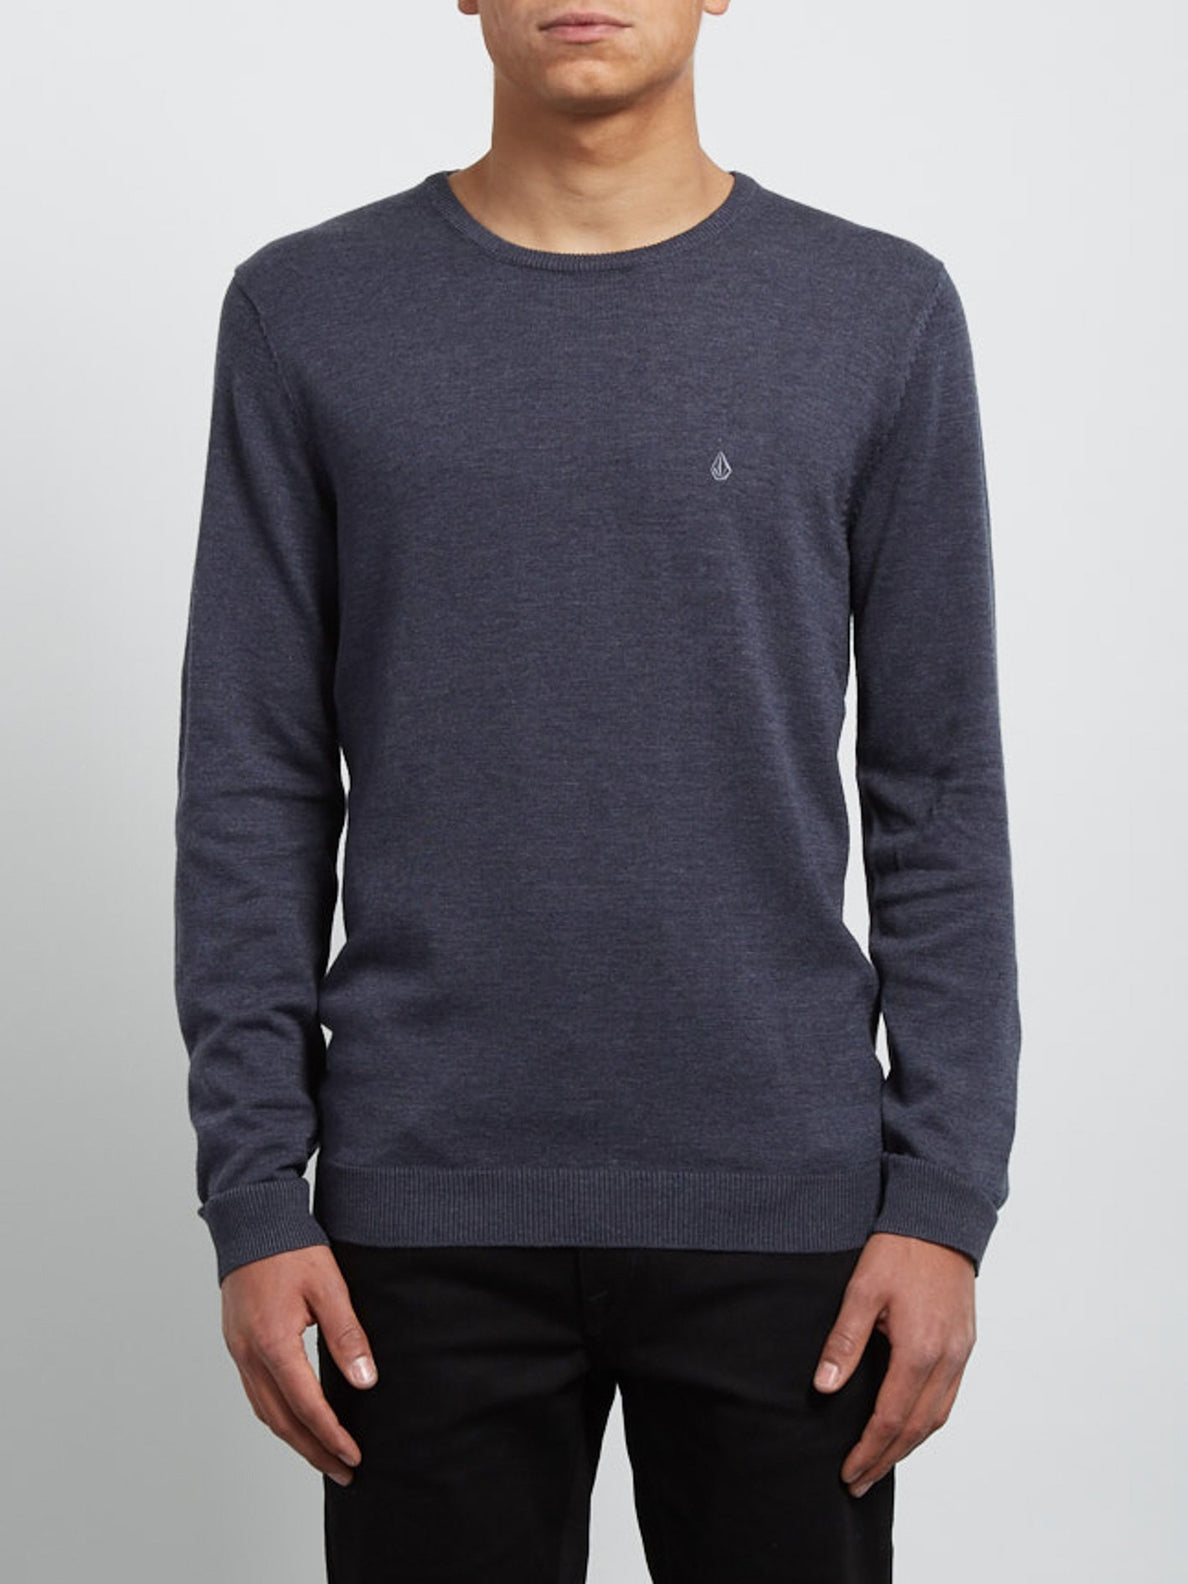 Uperstand Pullover - Navy